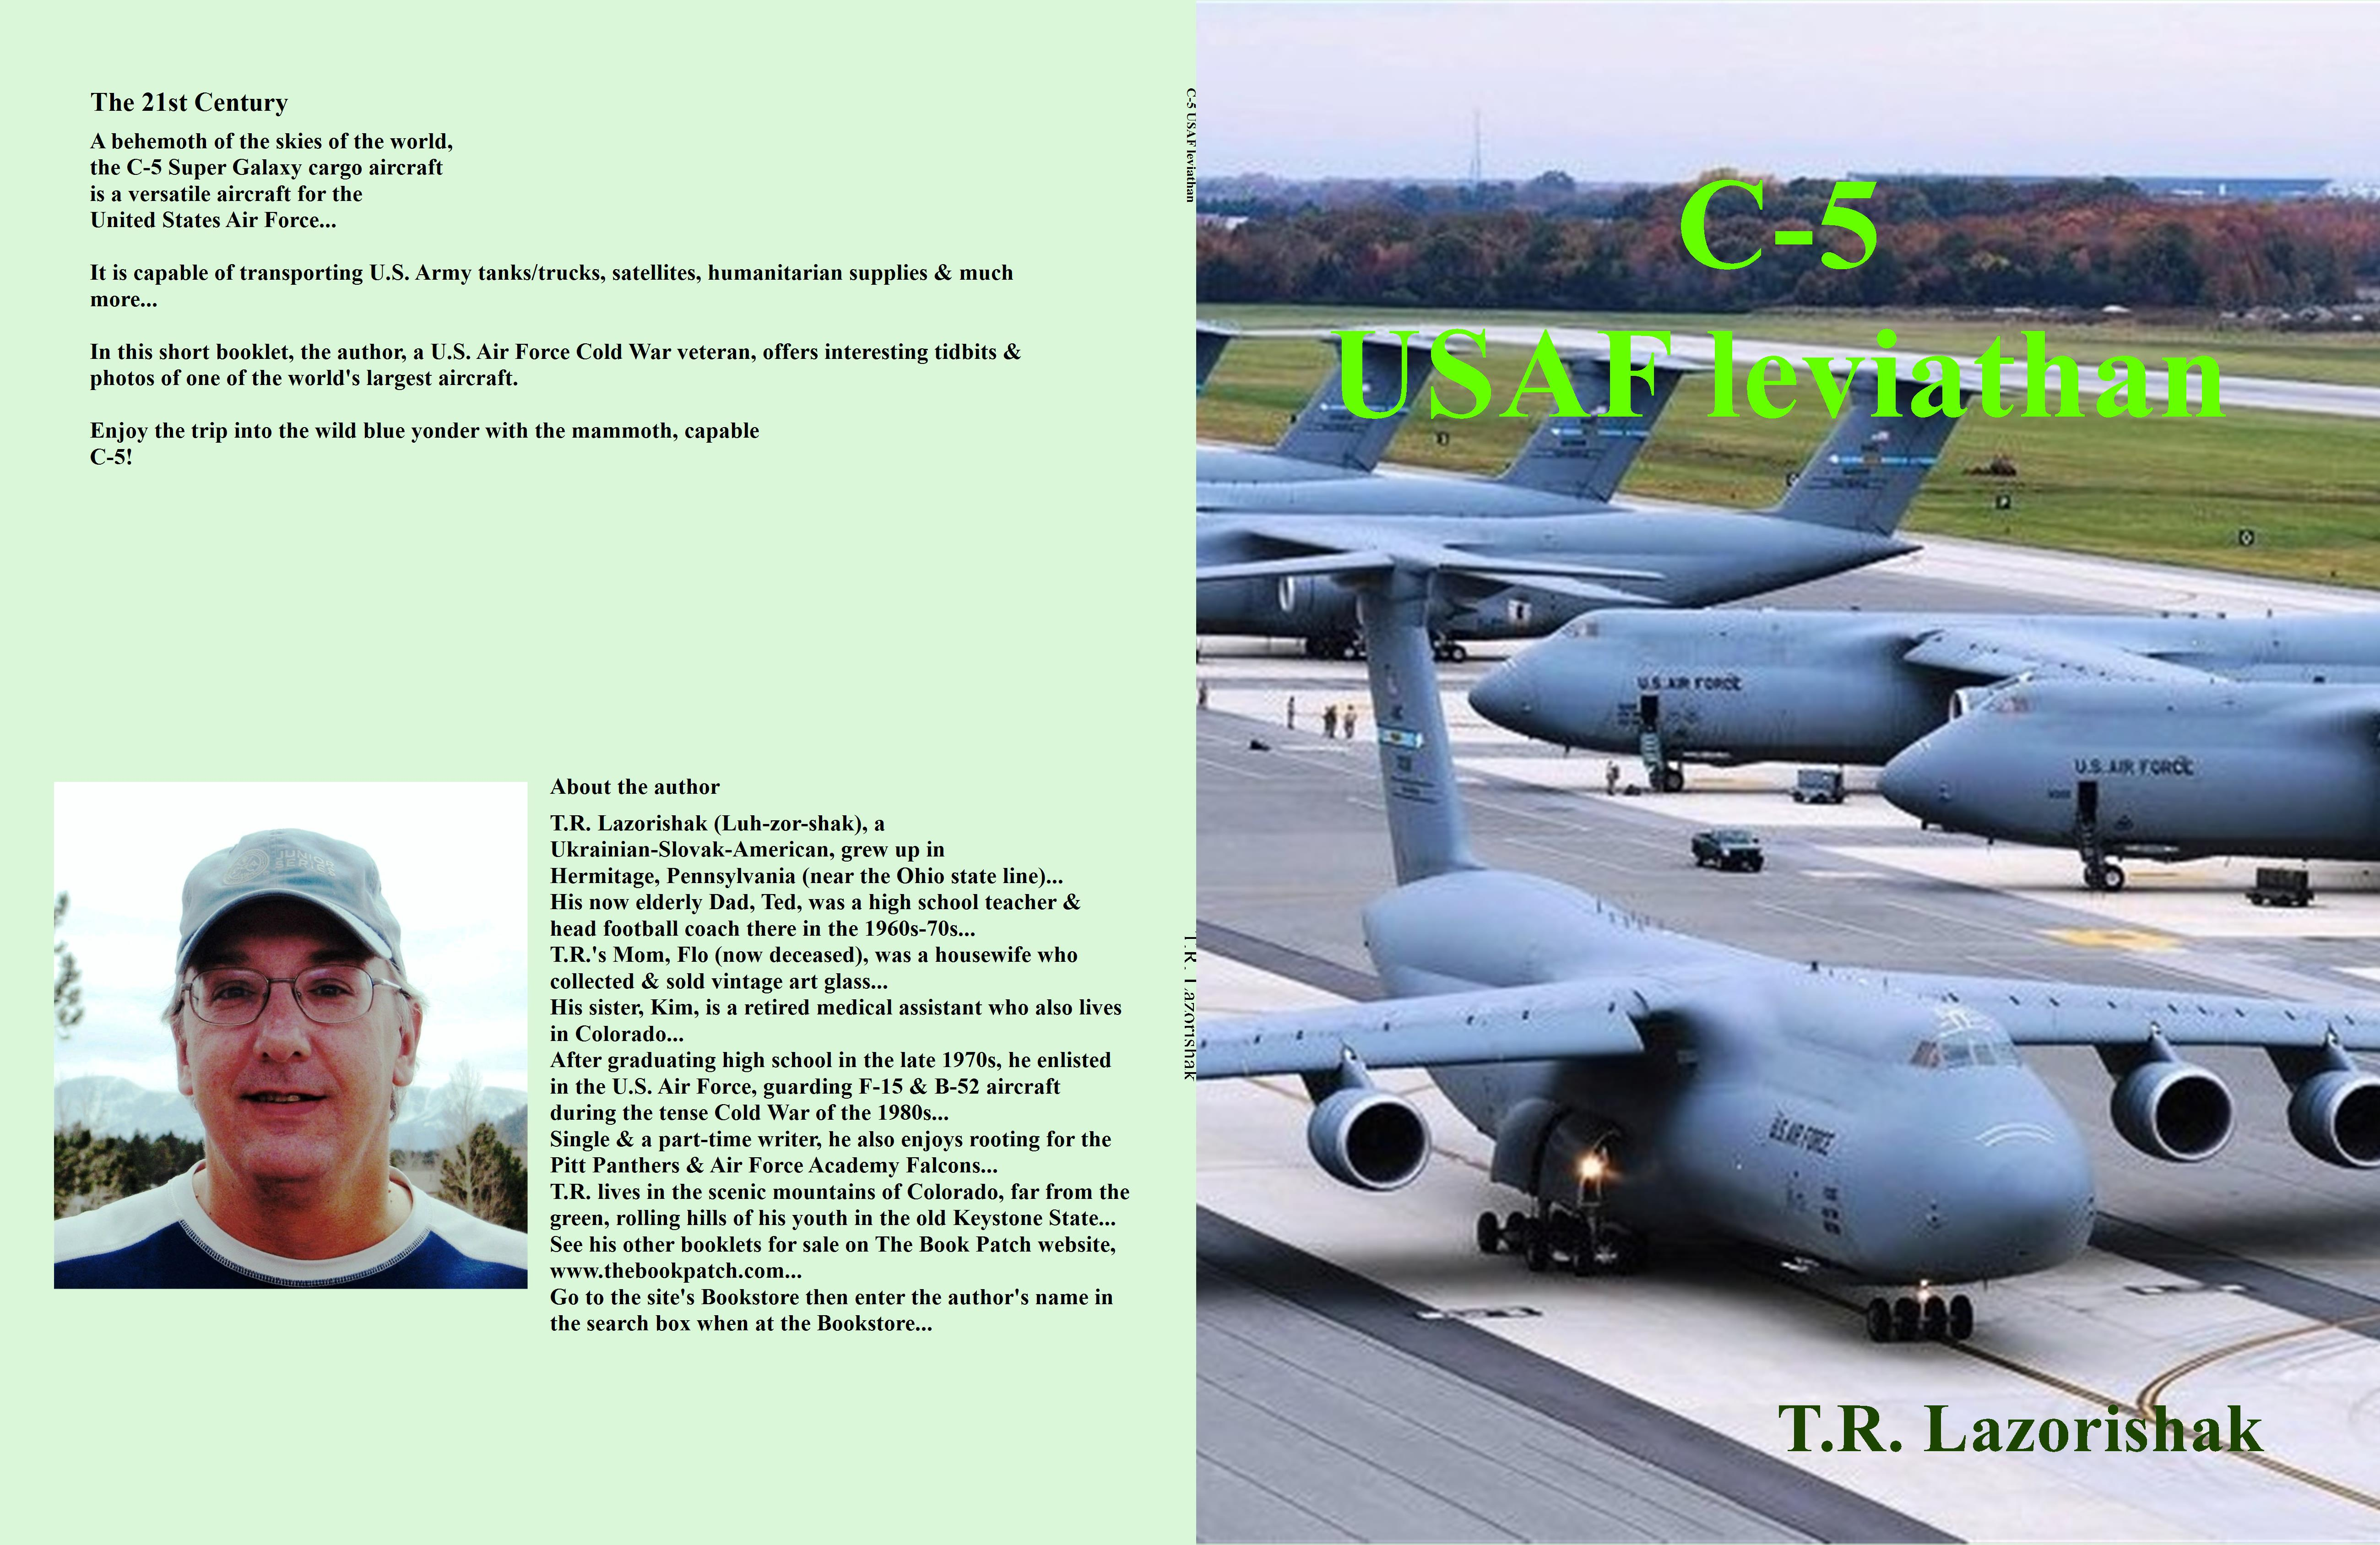 C-5 USAF leviathan cover image